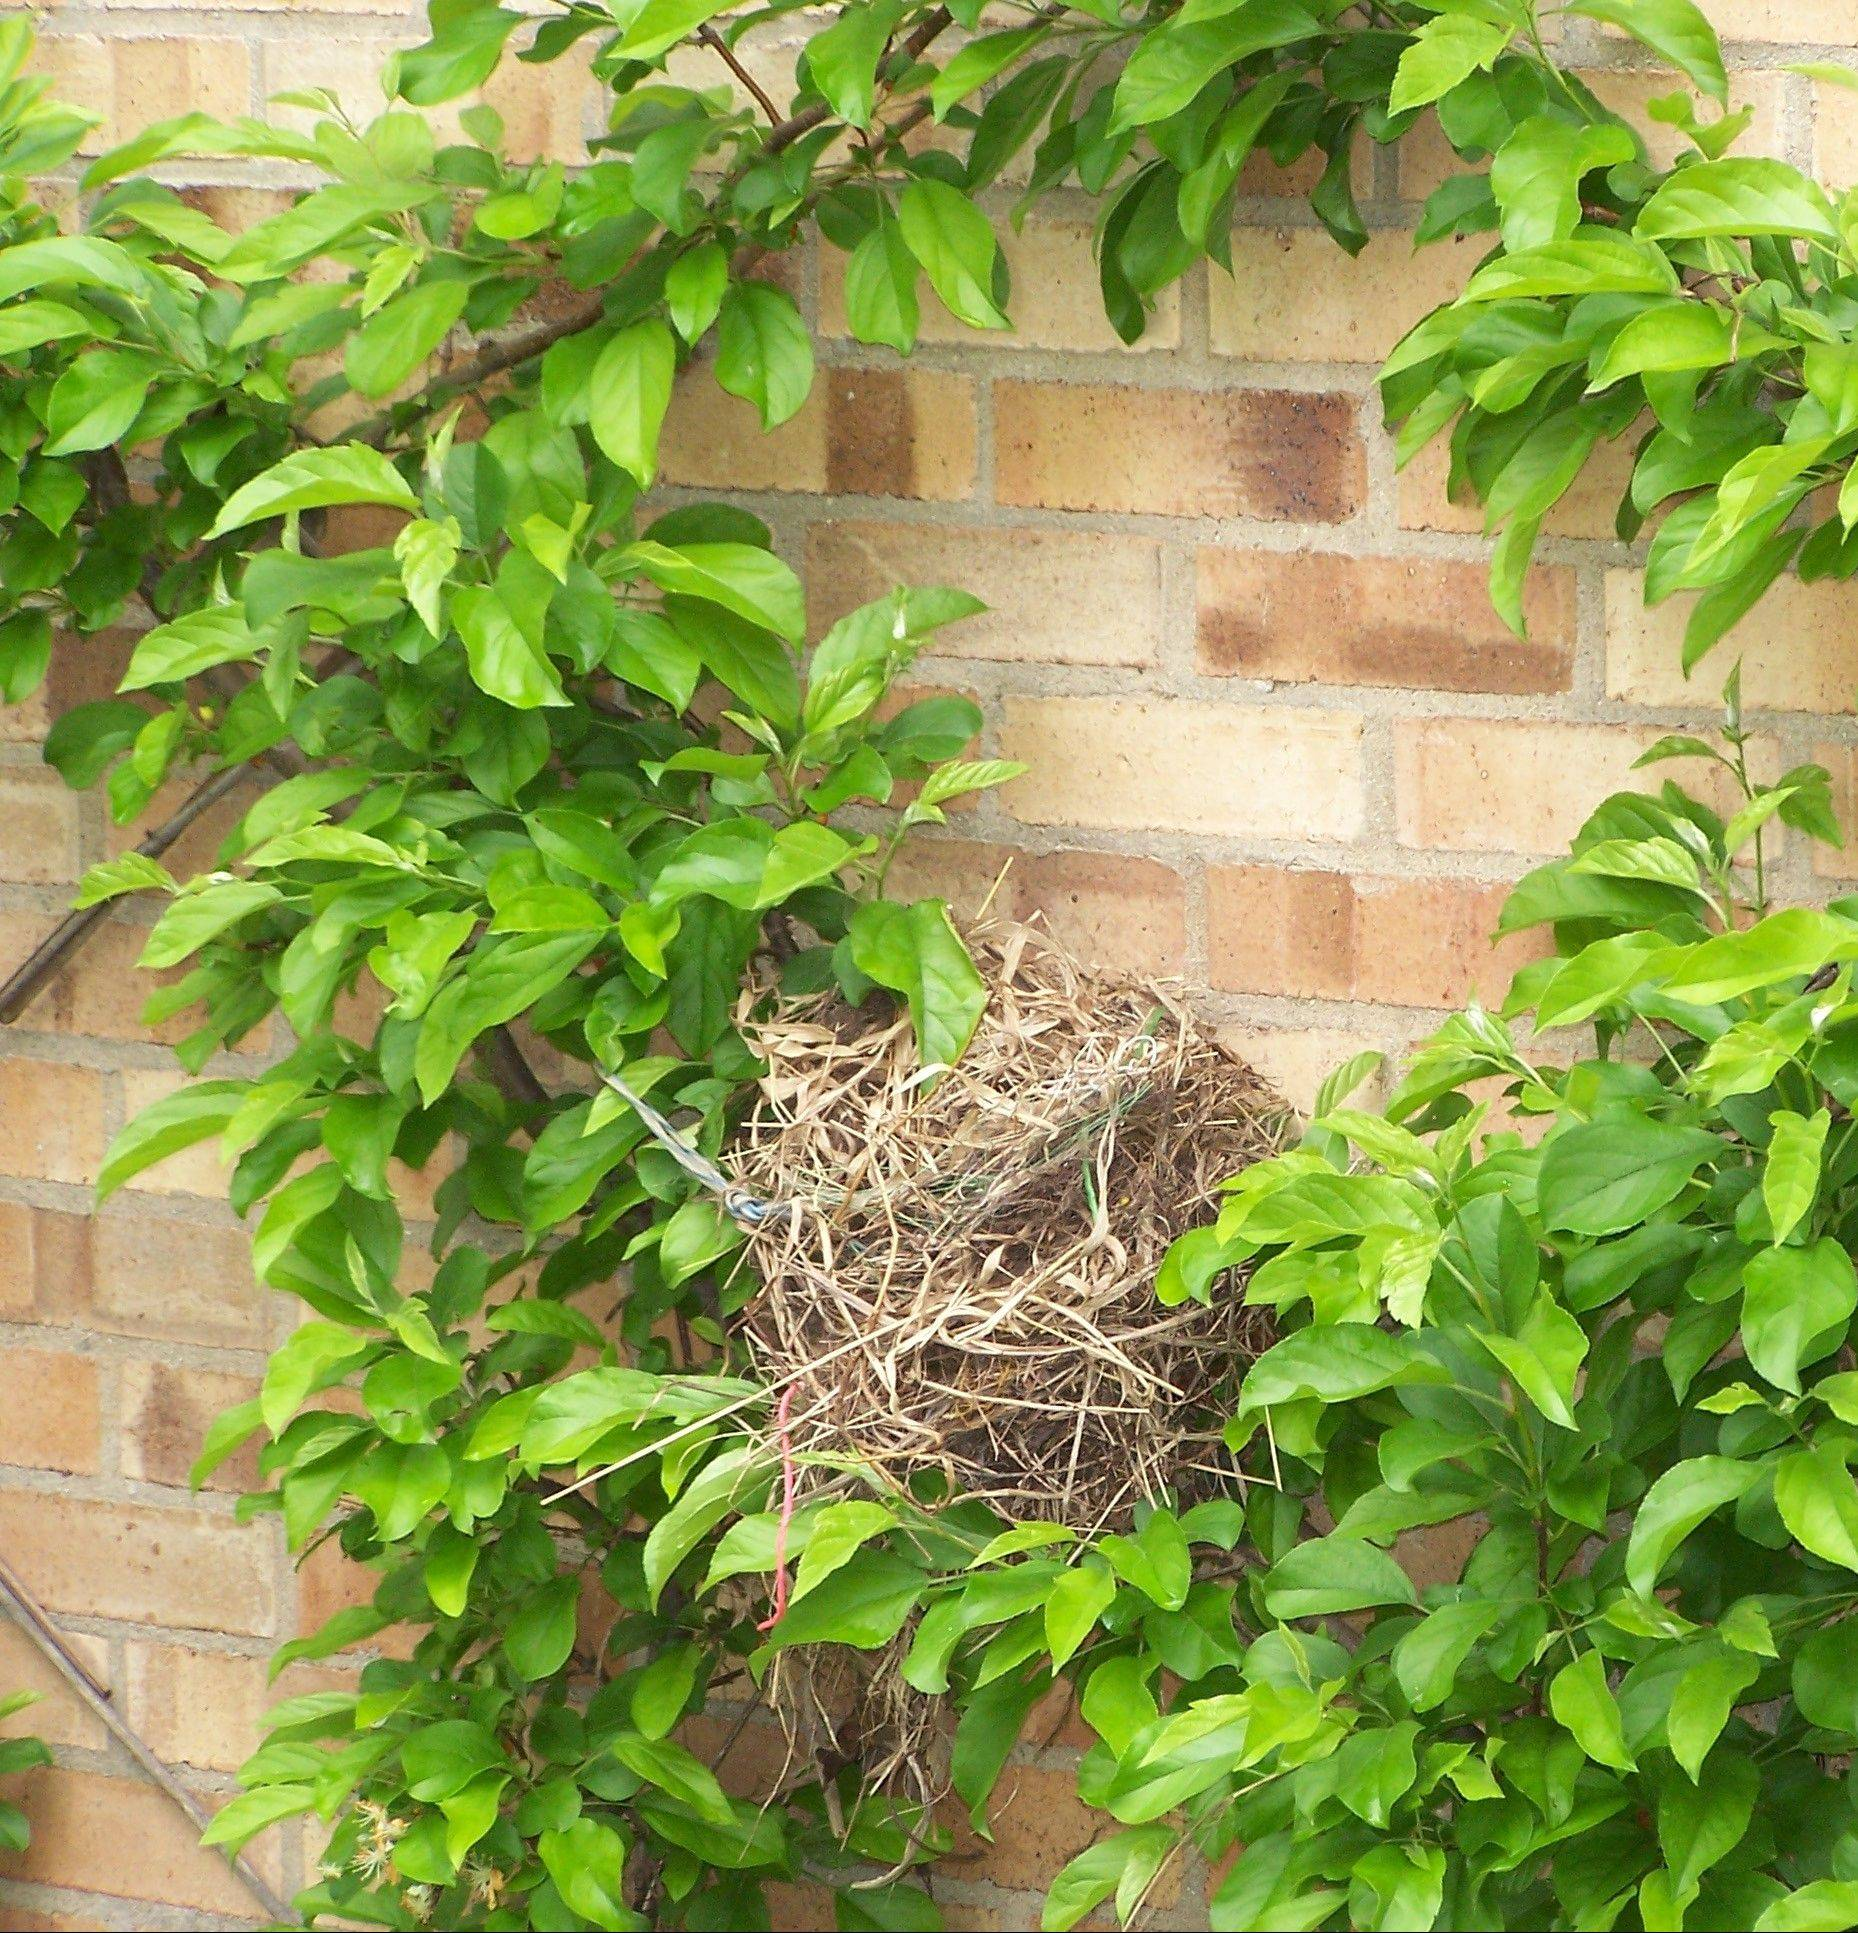 To make a home in your garden, birds need a place to use as shelter. Vines create spots for nesting in gardens.